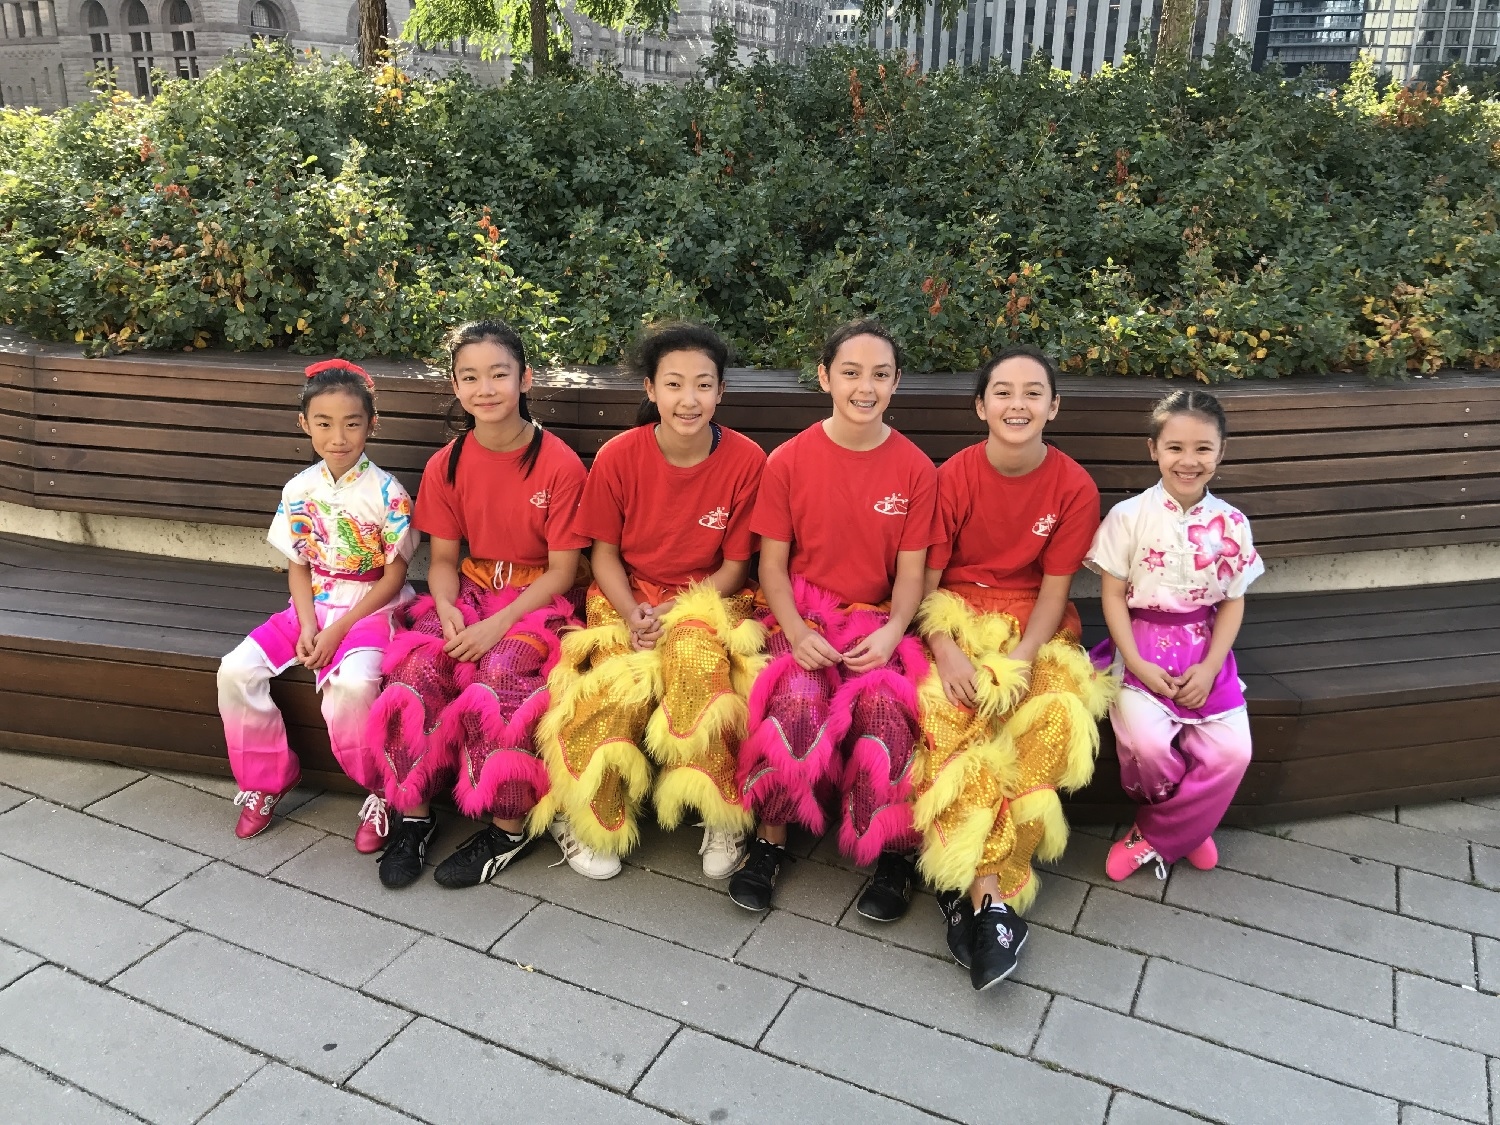 wayland-li-wushu-lion-dance-toronto-city-hall-china-national-day-2017-3.jpg